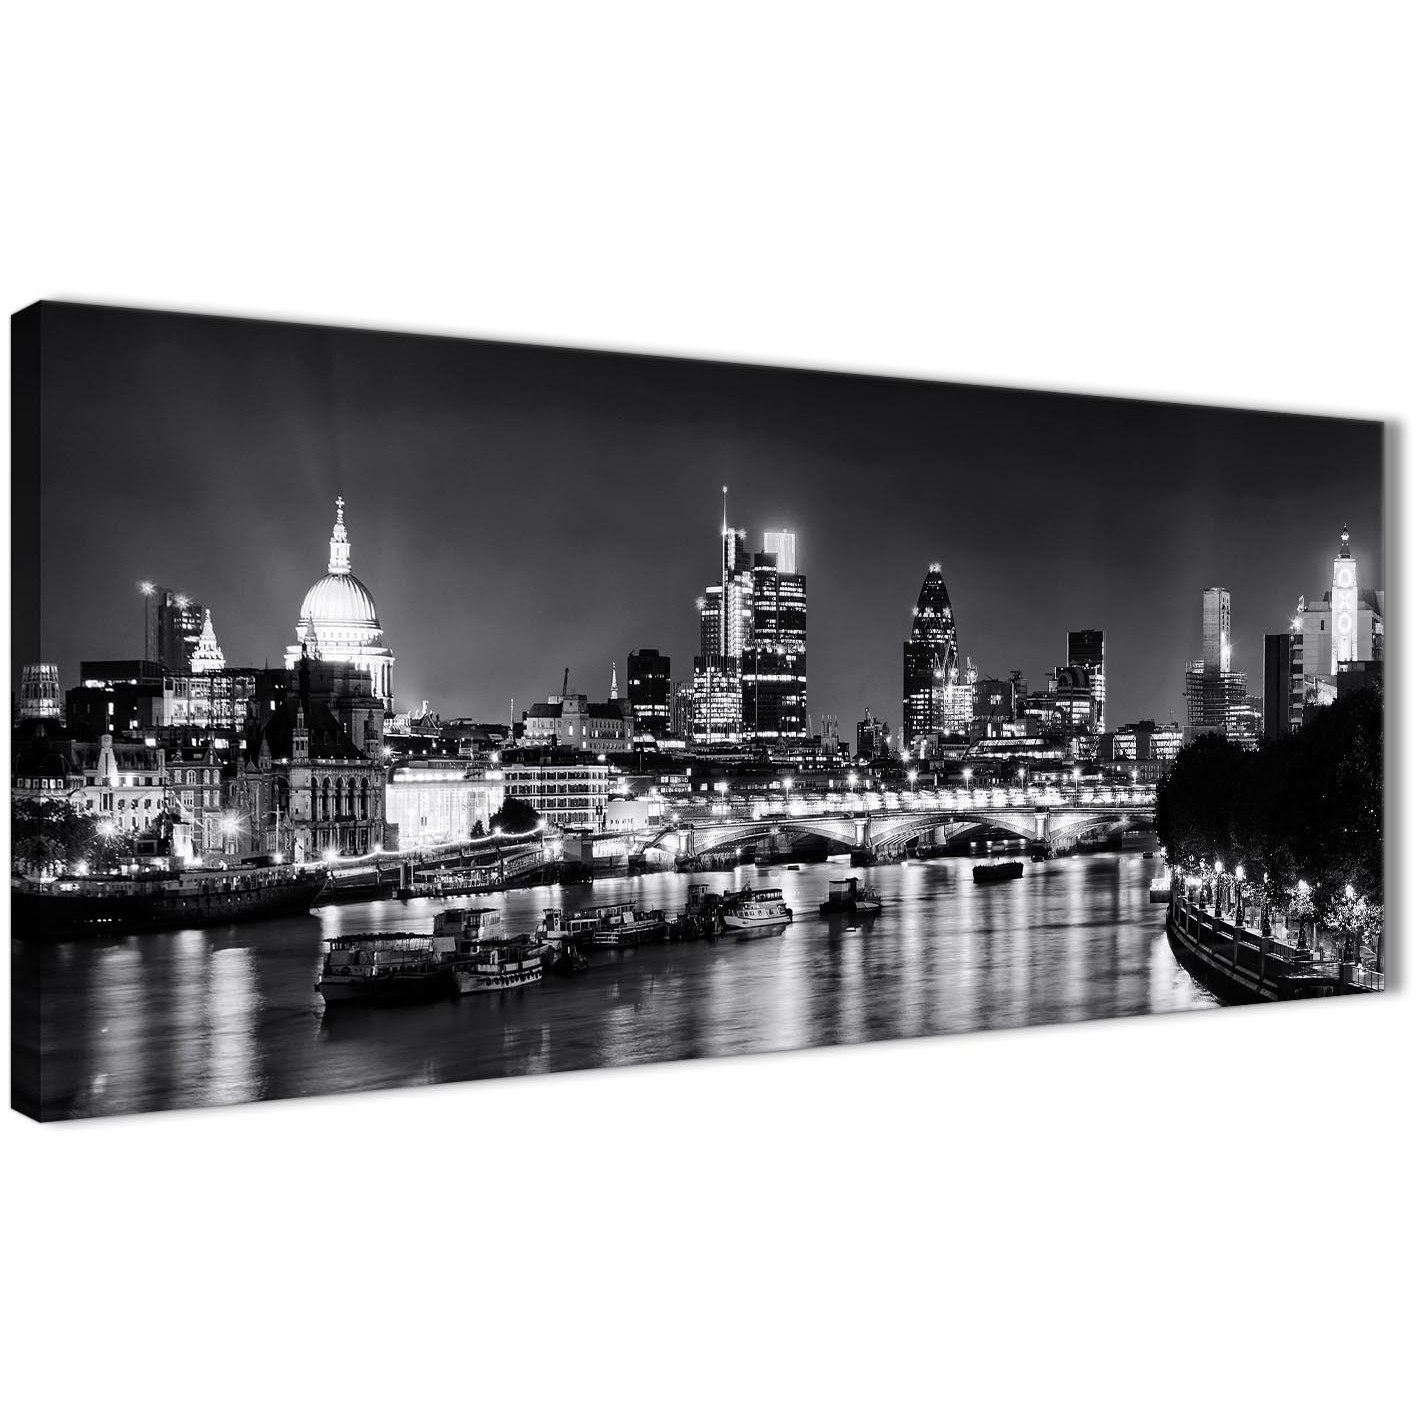 Black And White Canvas Pictures River Thames London Skyline Canvas Art Pictures Cityscape 1430 Black White Grey 120cm Wide Print